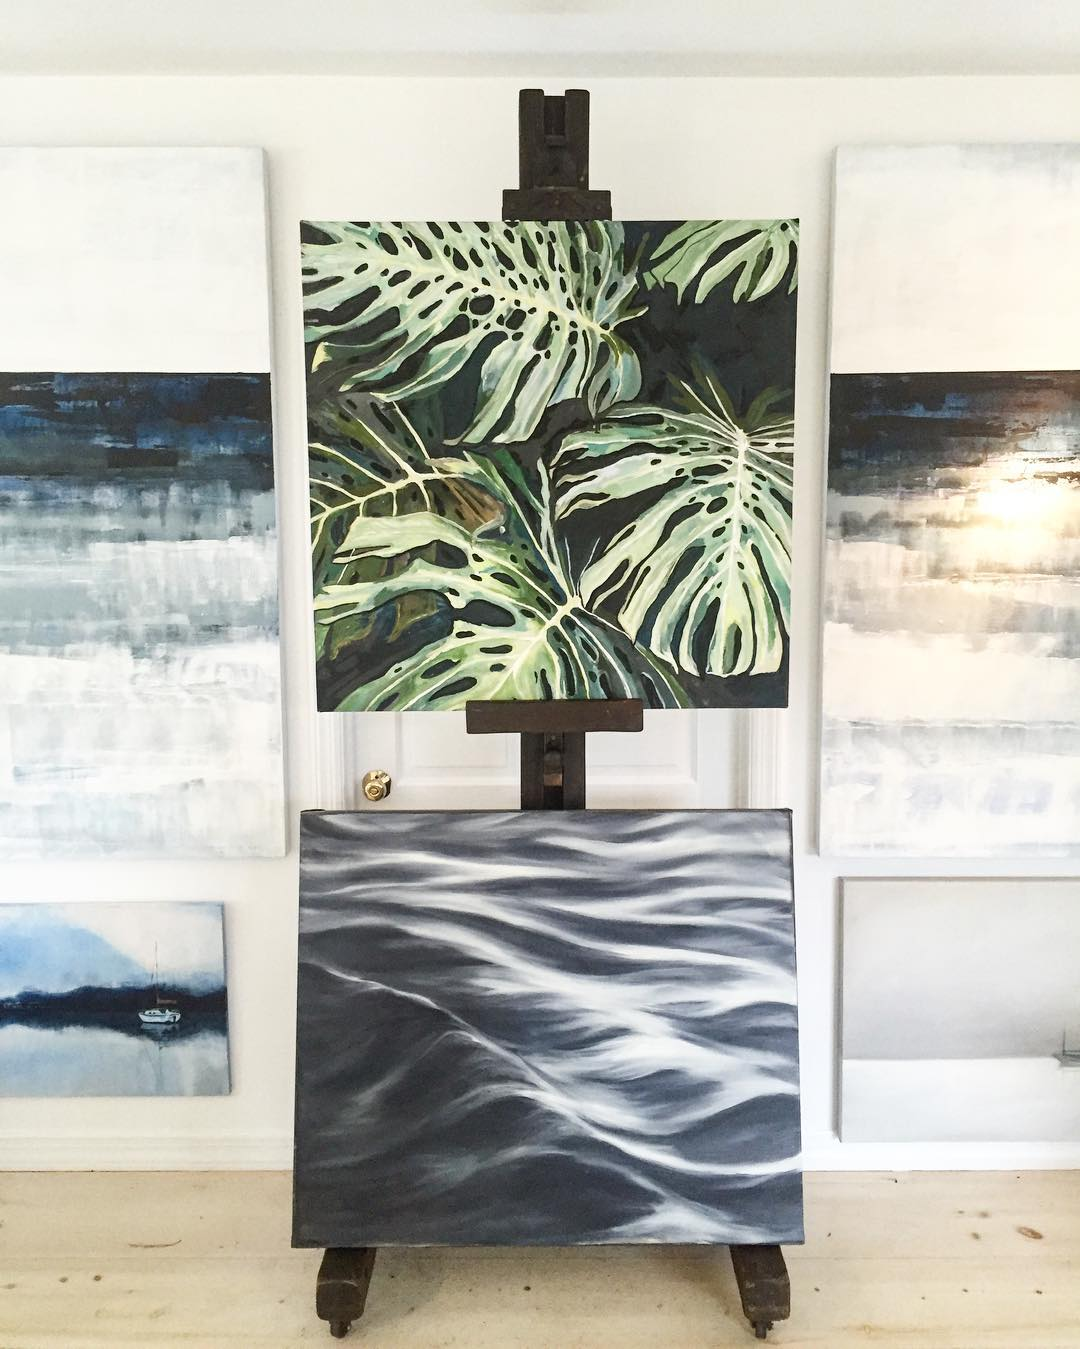 Image via Destination Haus. (My sailboat is bottom left, the other are by Sam Malpass.)